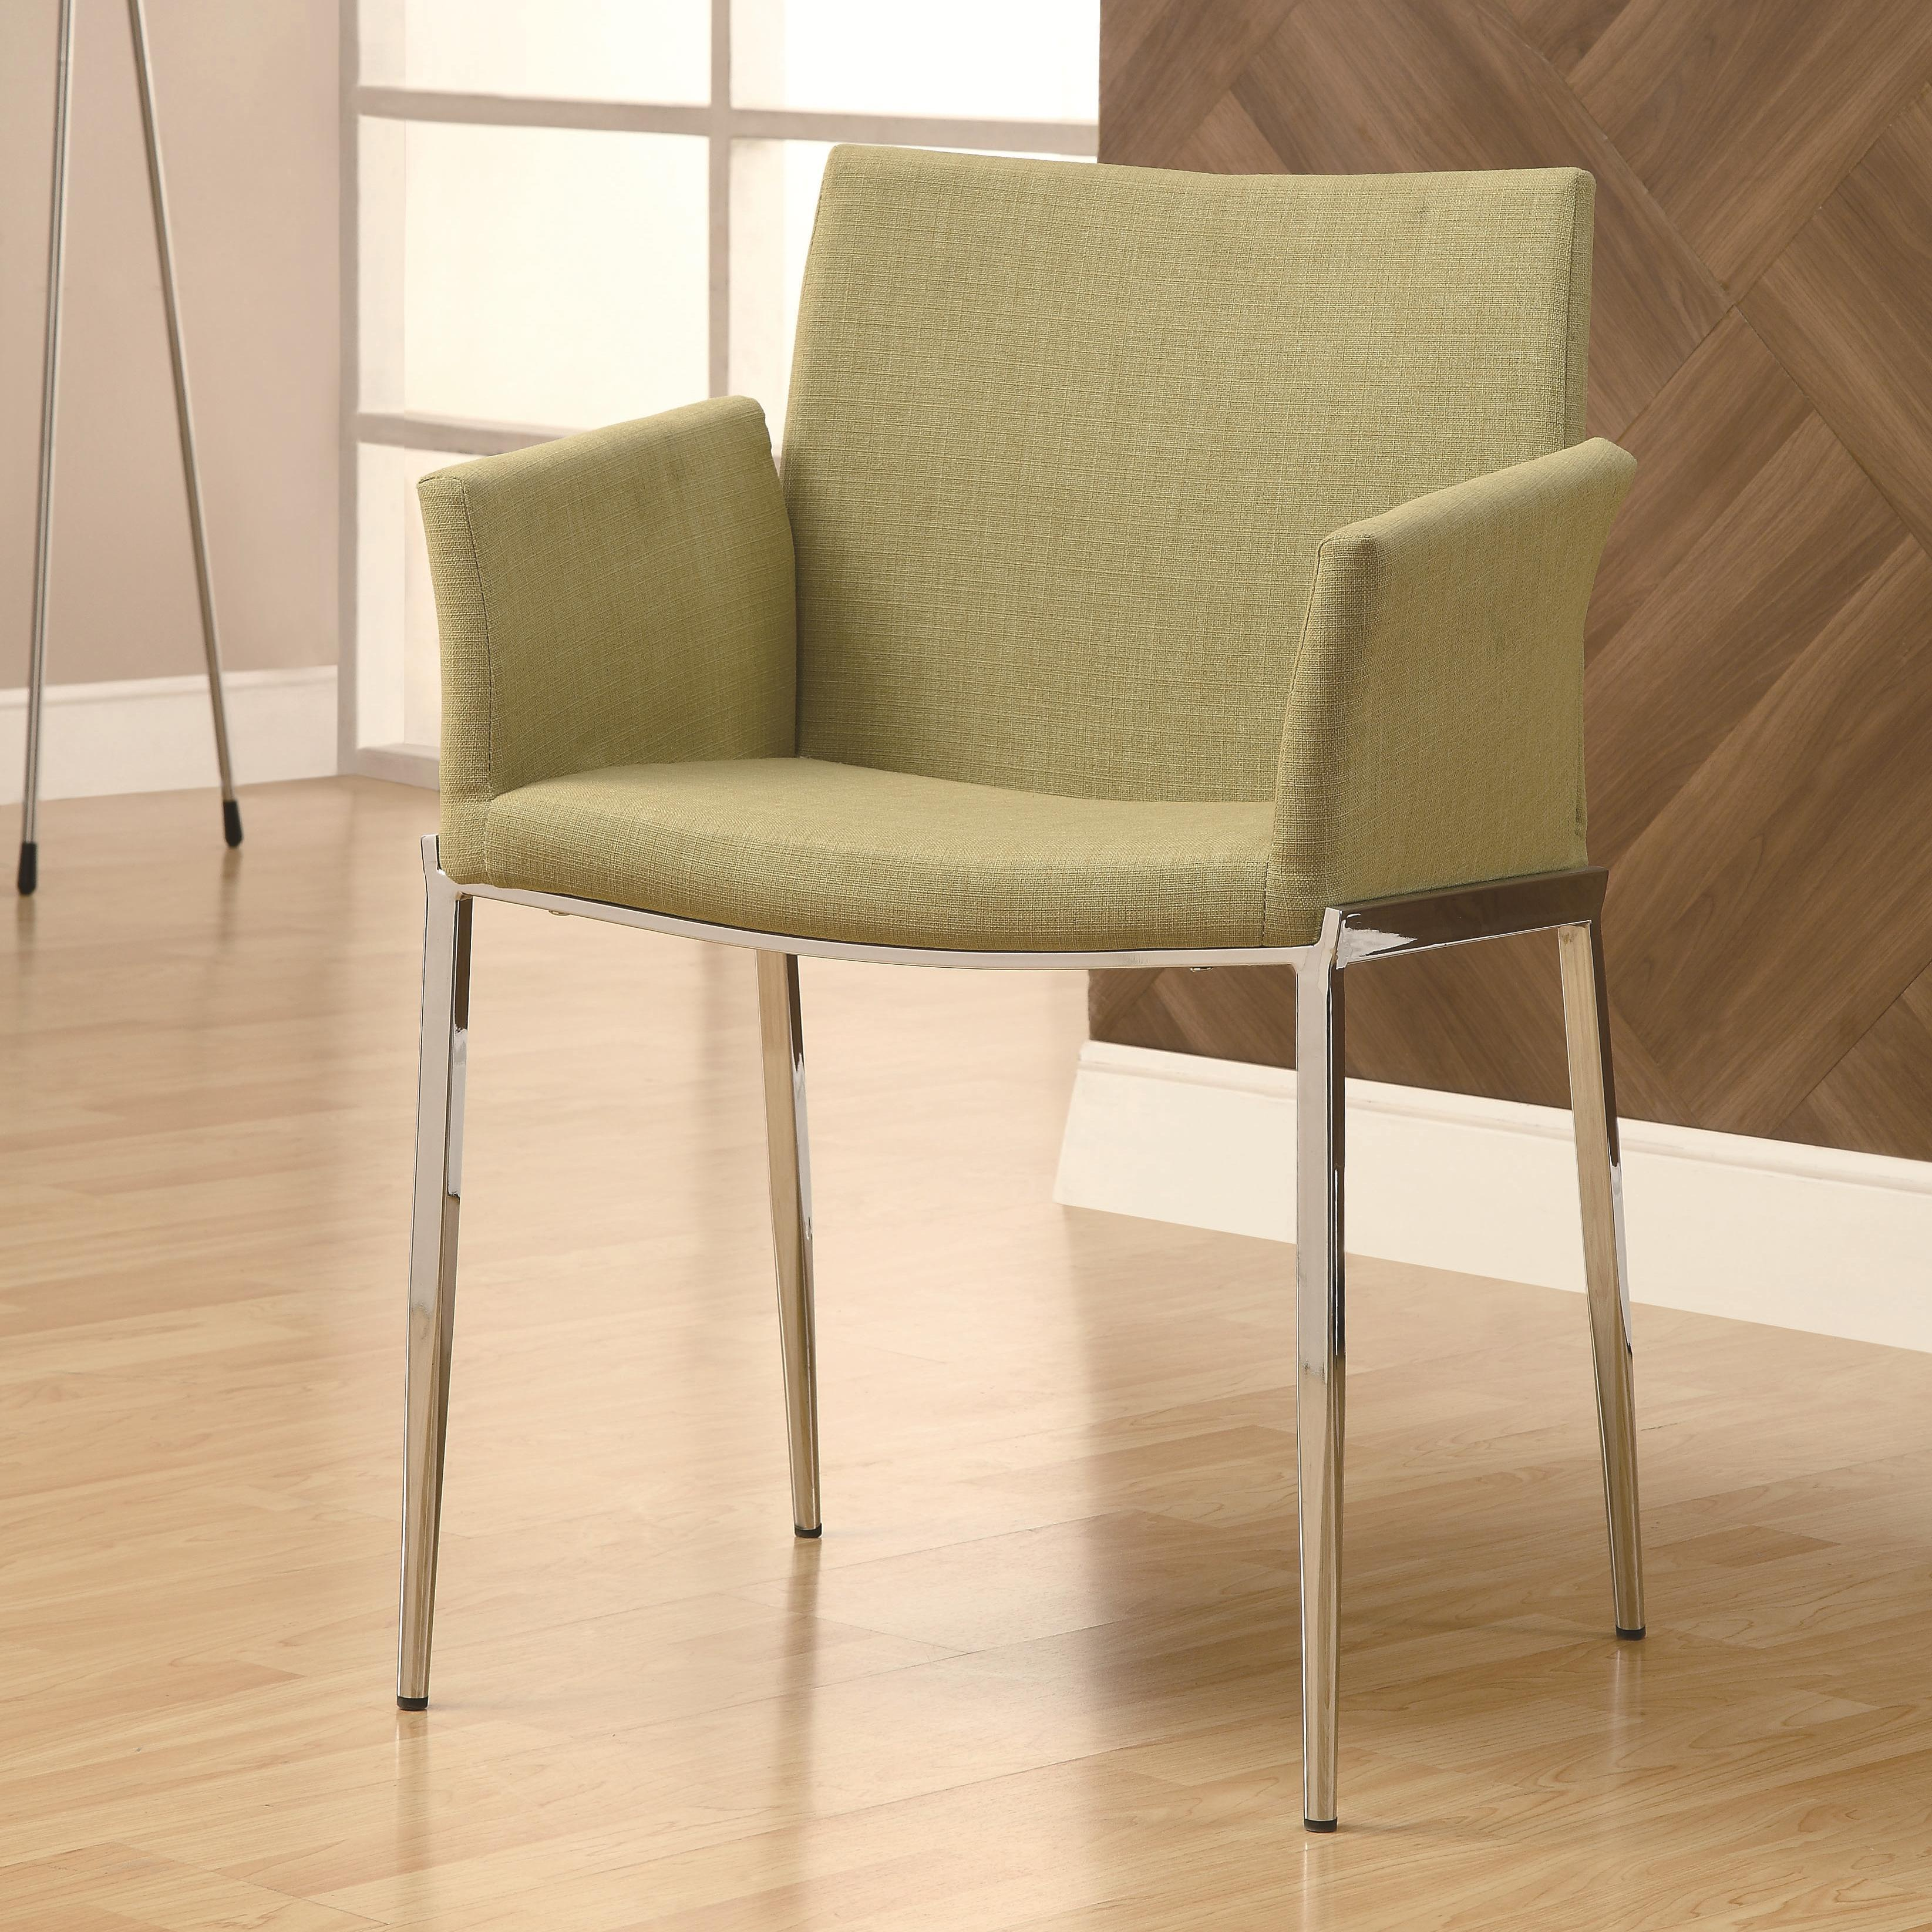 Dining 120 Pear Upholstered Dining Chair with Chrome Legs  : Dining2012020 20 181734809120724 b0 from www.mybeverlyhillsfurniture.com size 3290 x 3290 jpeg 1129kB